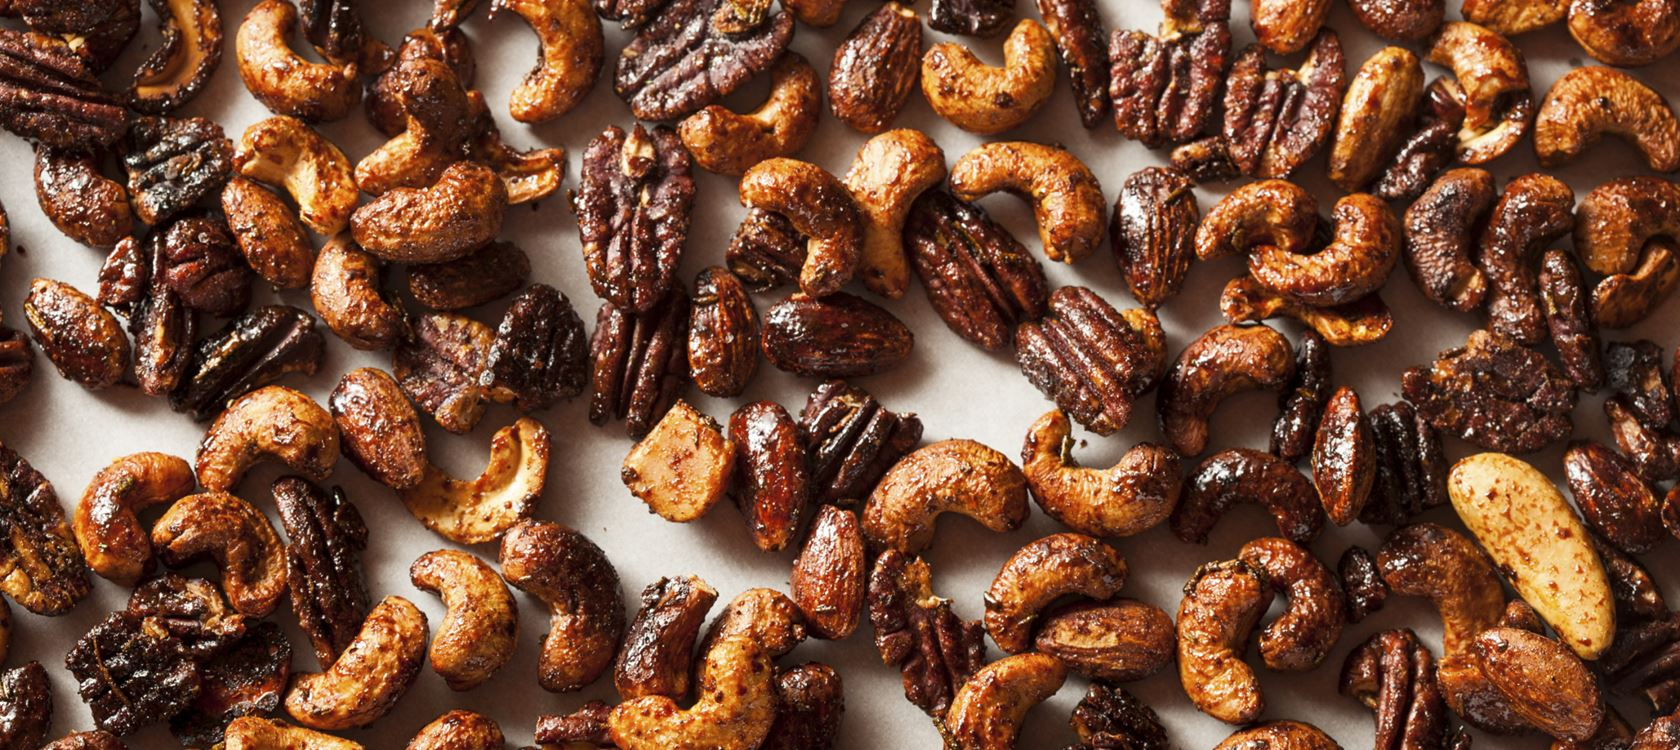 Caramelised Nuts